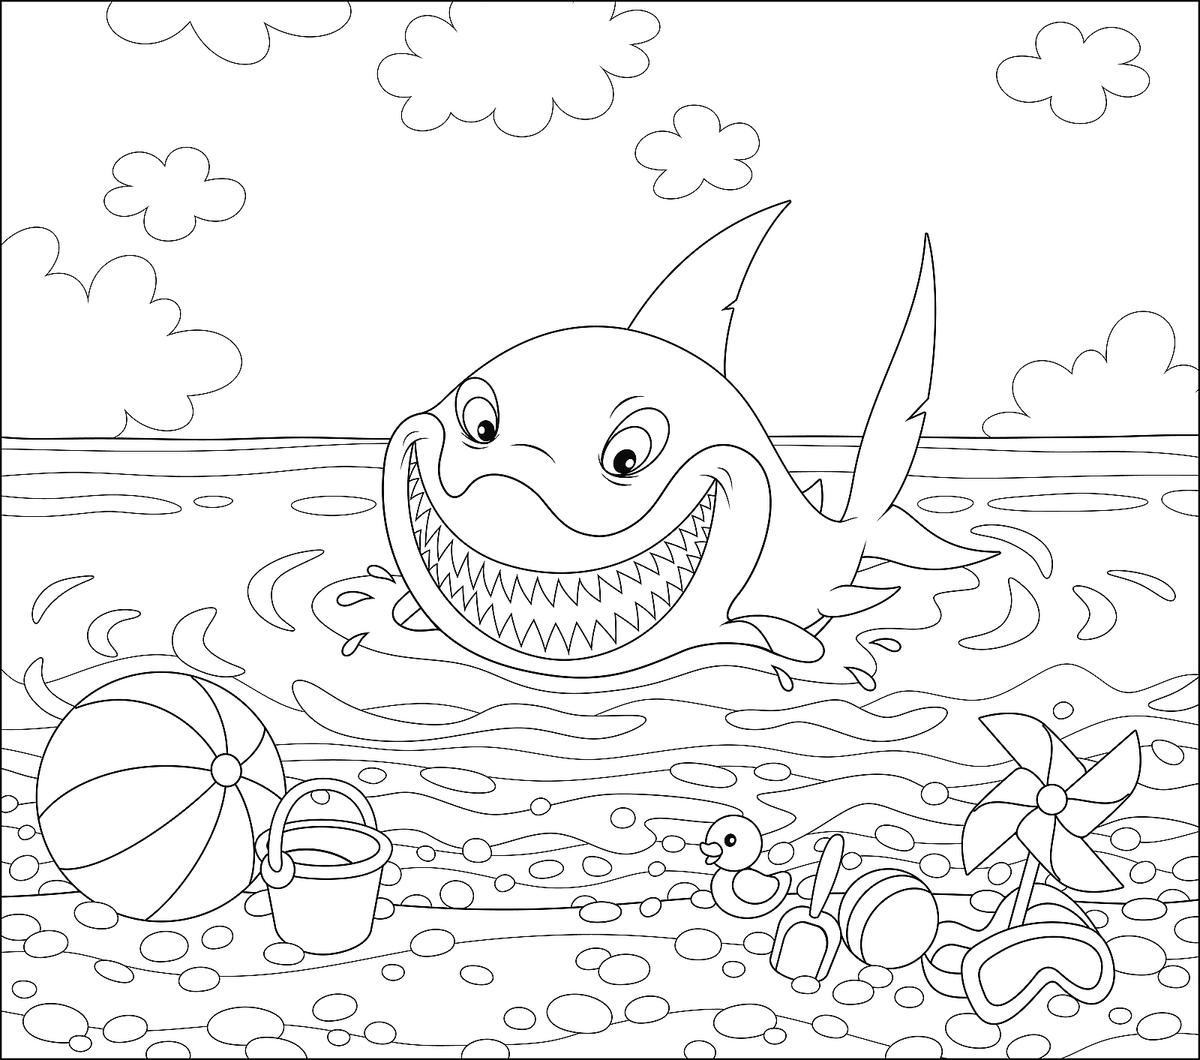 Sea Creatures Coloring Pages: Fish, Dolphins, Sharks ...